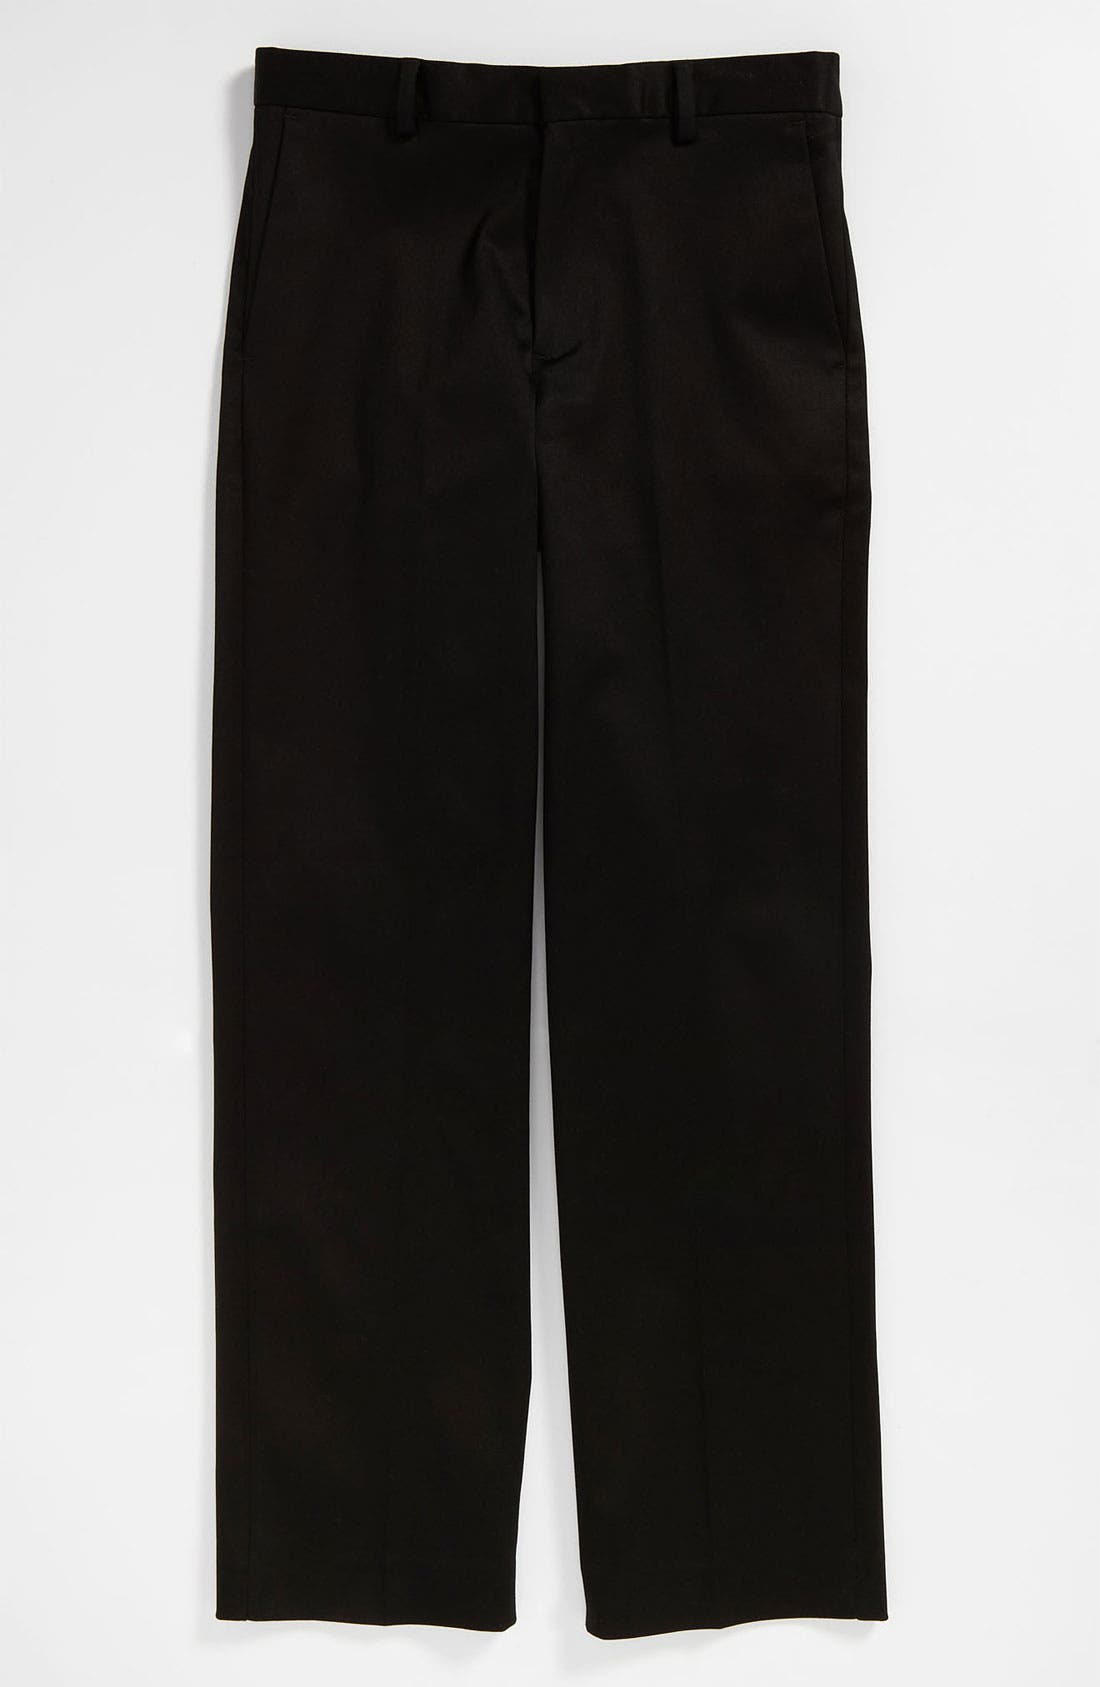 Alternate Image 1 Selected - C2 by Calibrate Flat Front Sateen Pants (Big Boys)